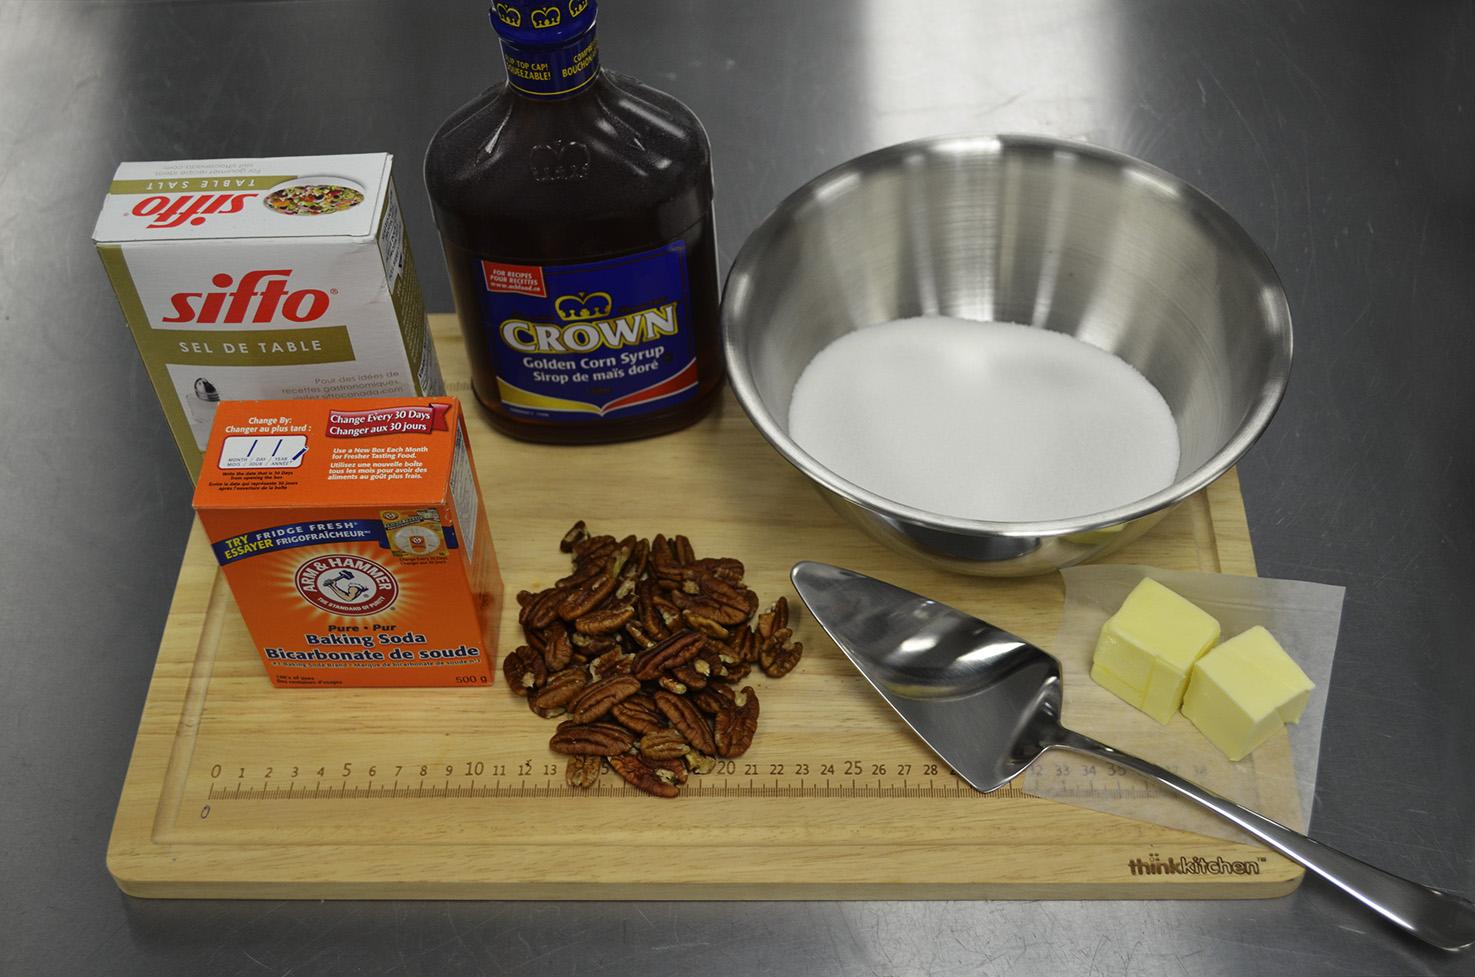 INGREDIENT BRITTLE